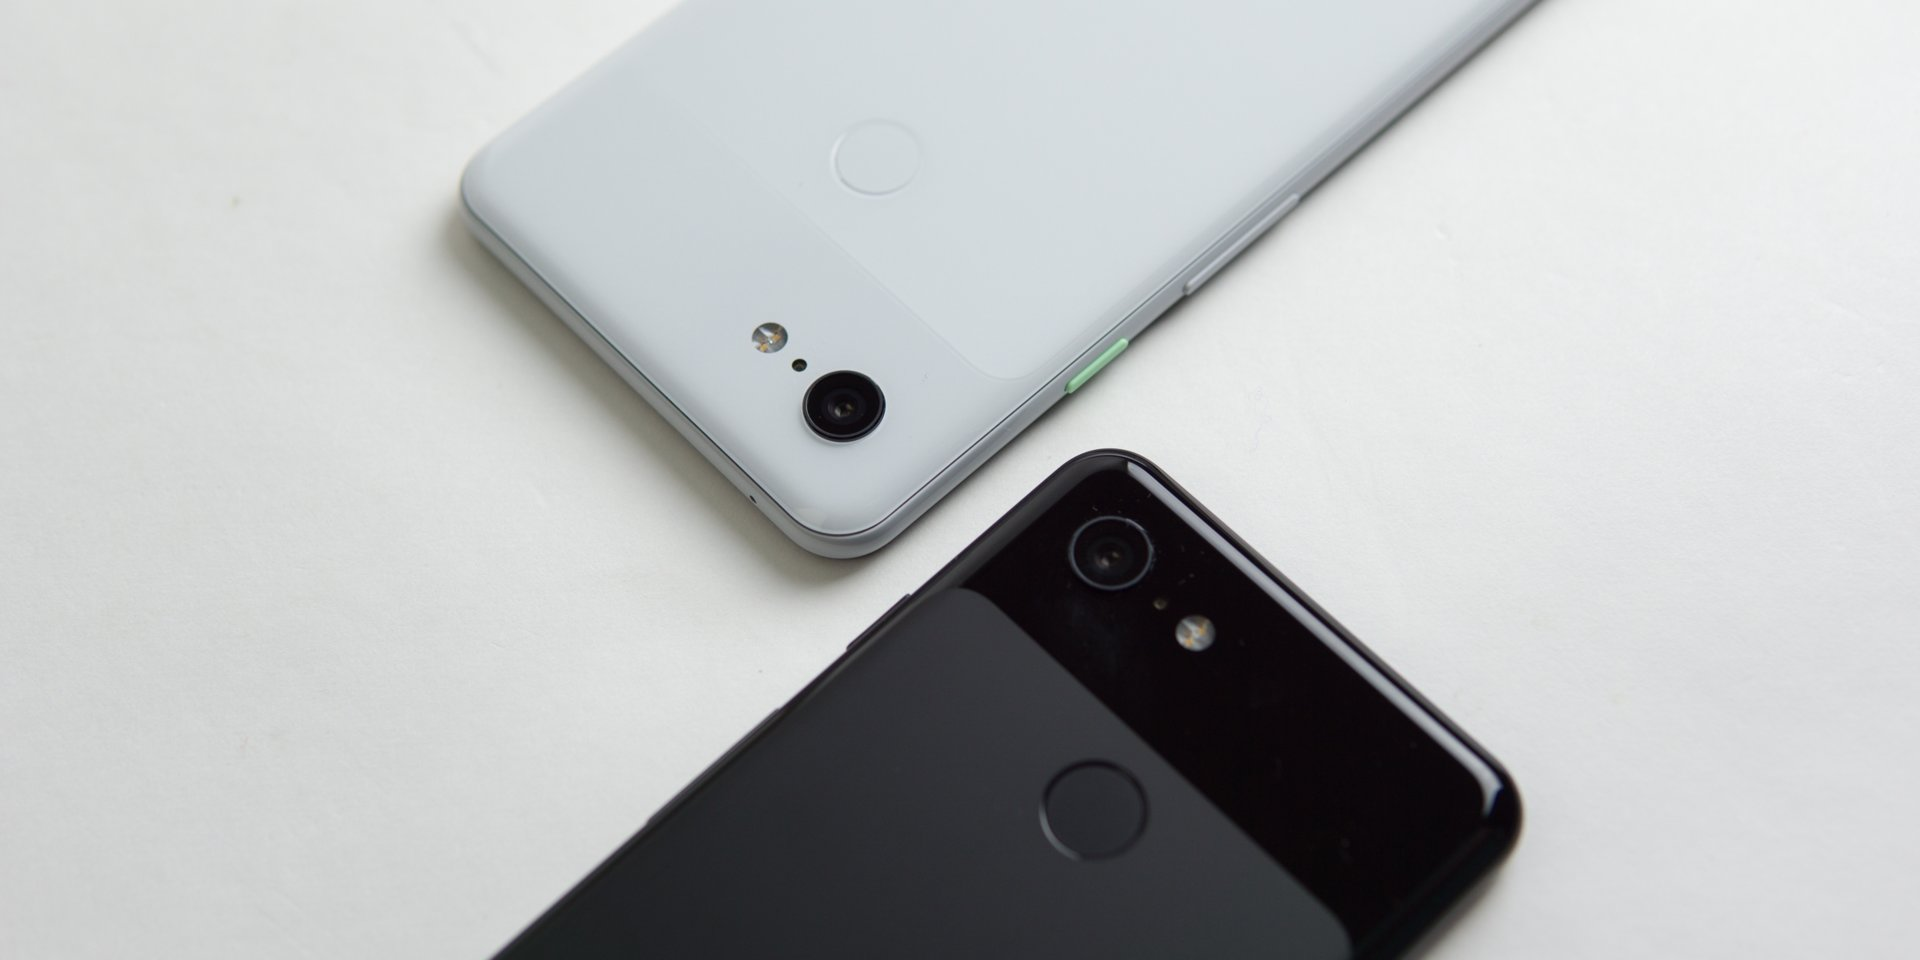 Pixel 3a and Pixel 4 releasing differently